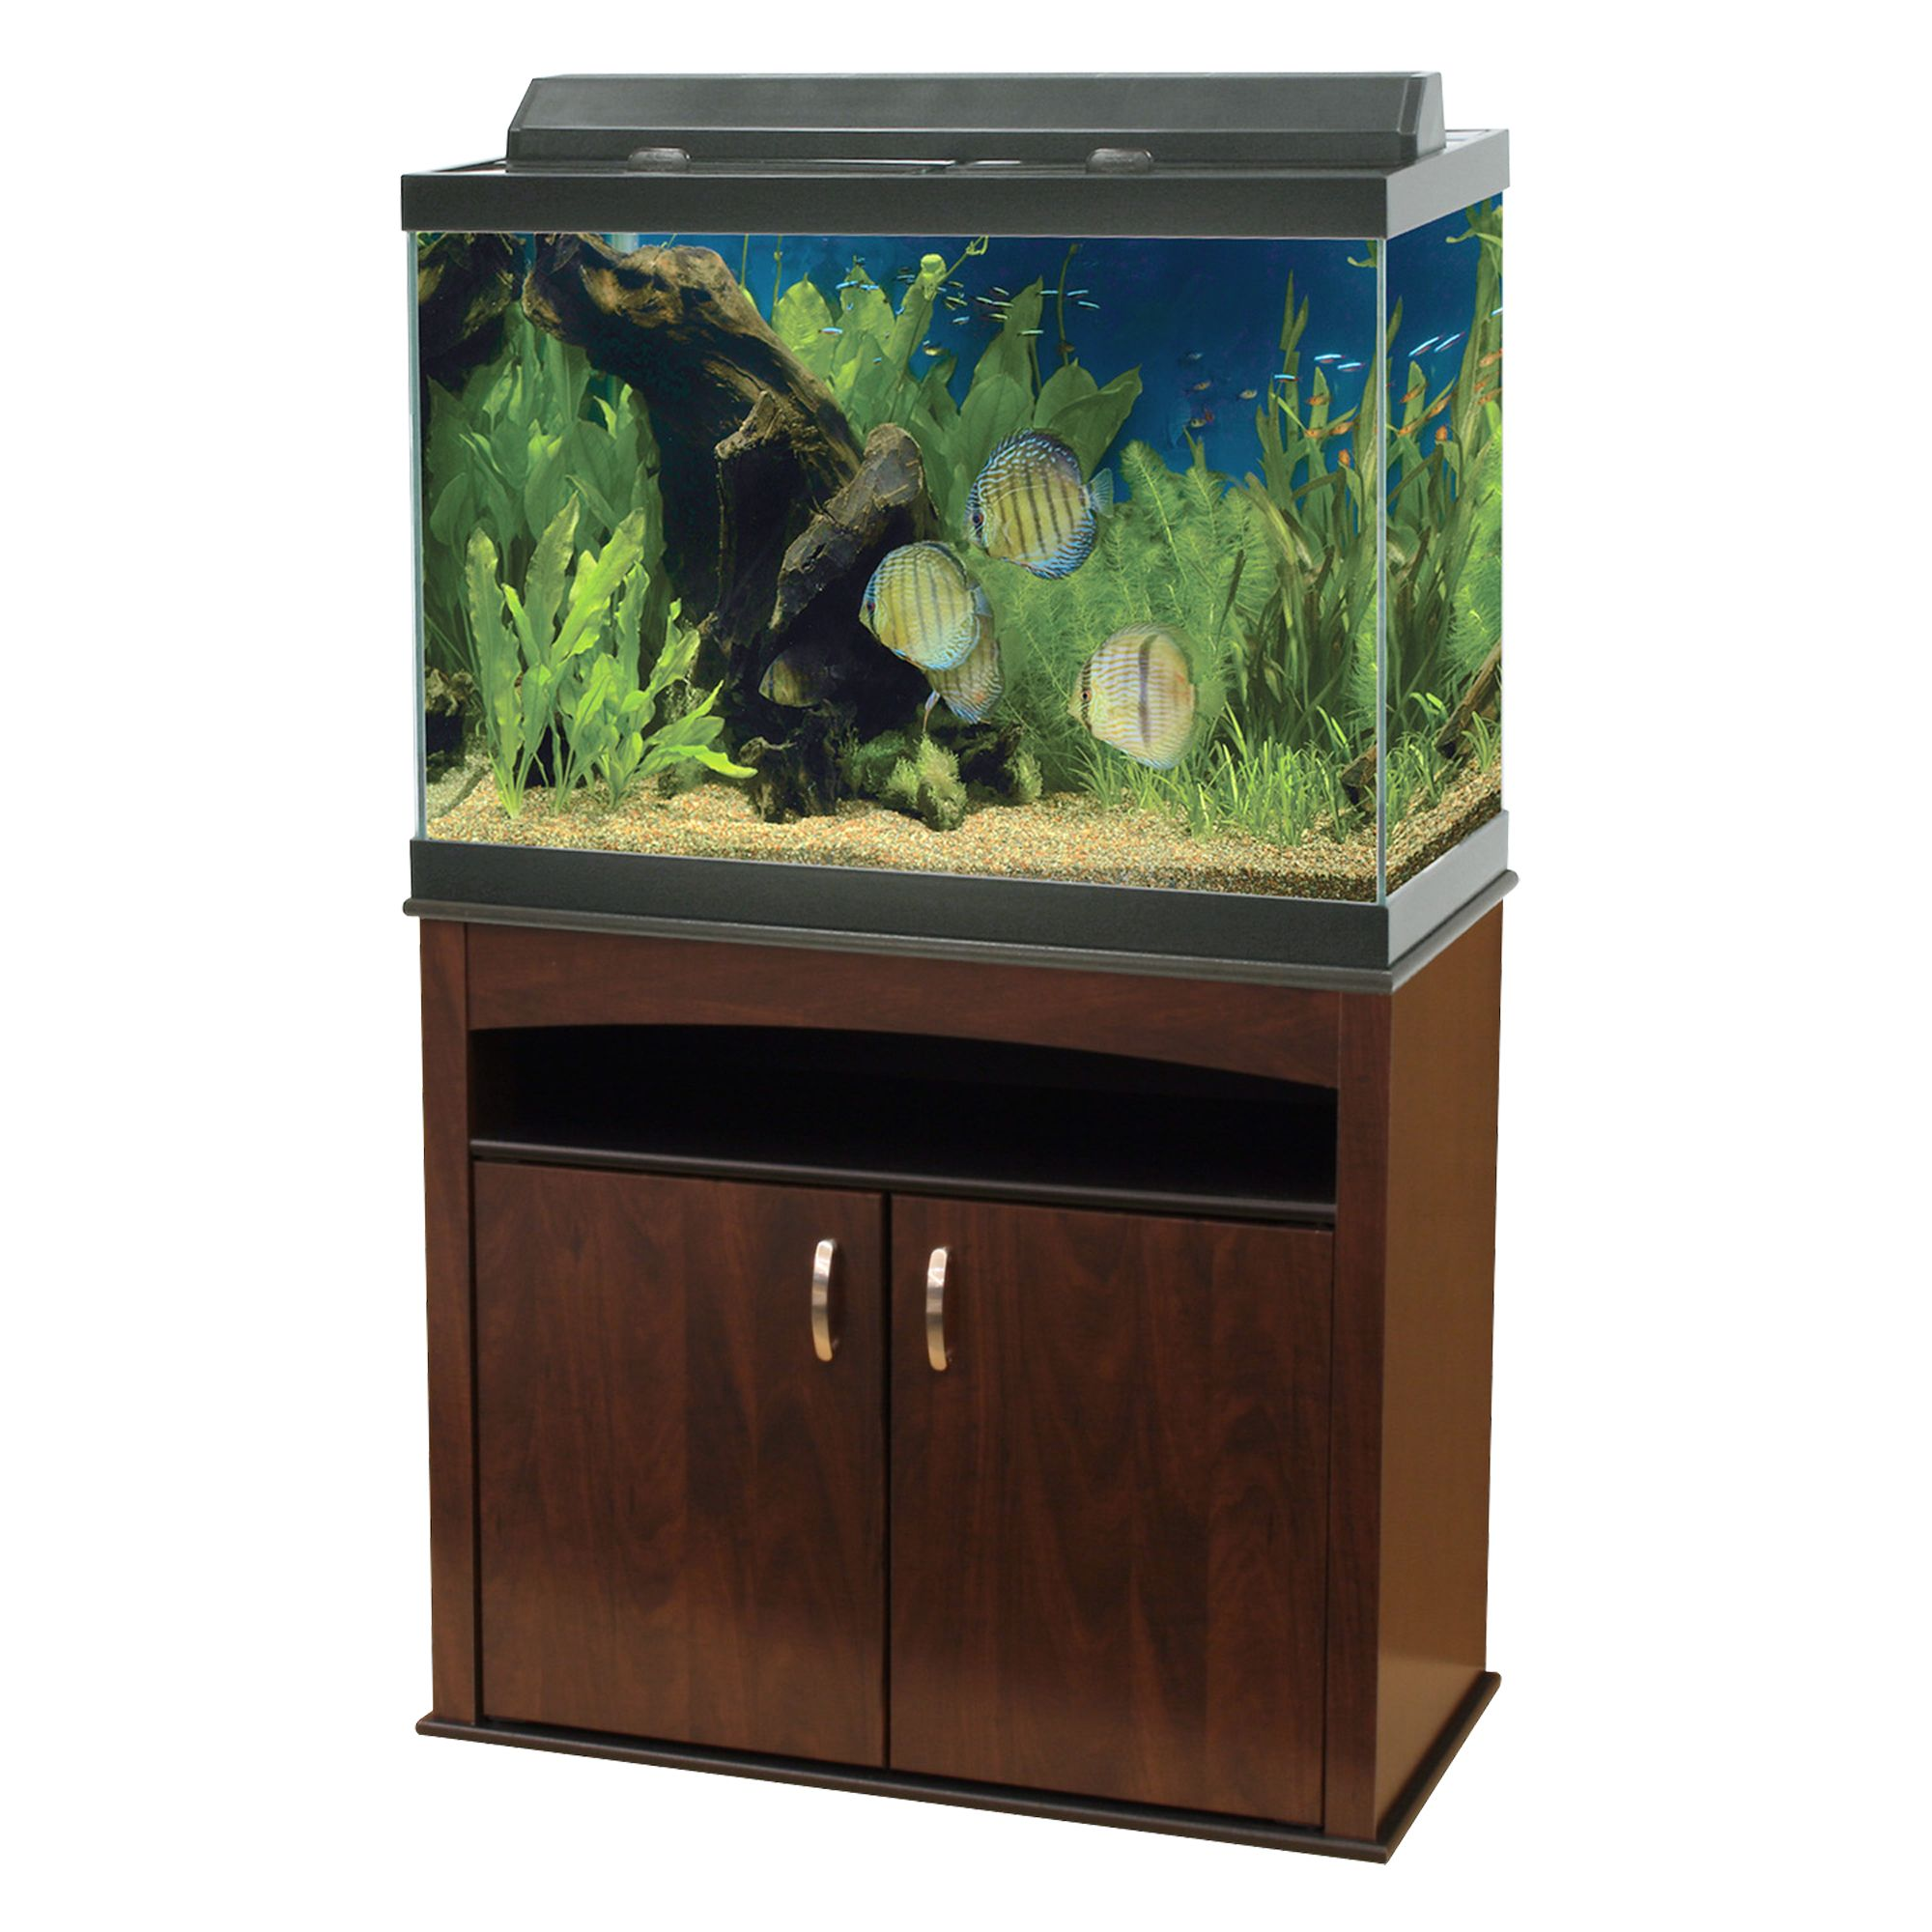 Aqueonreg 65 Gallon Aquarium Ensemble size 65 Gal Brown